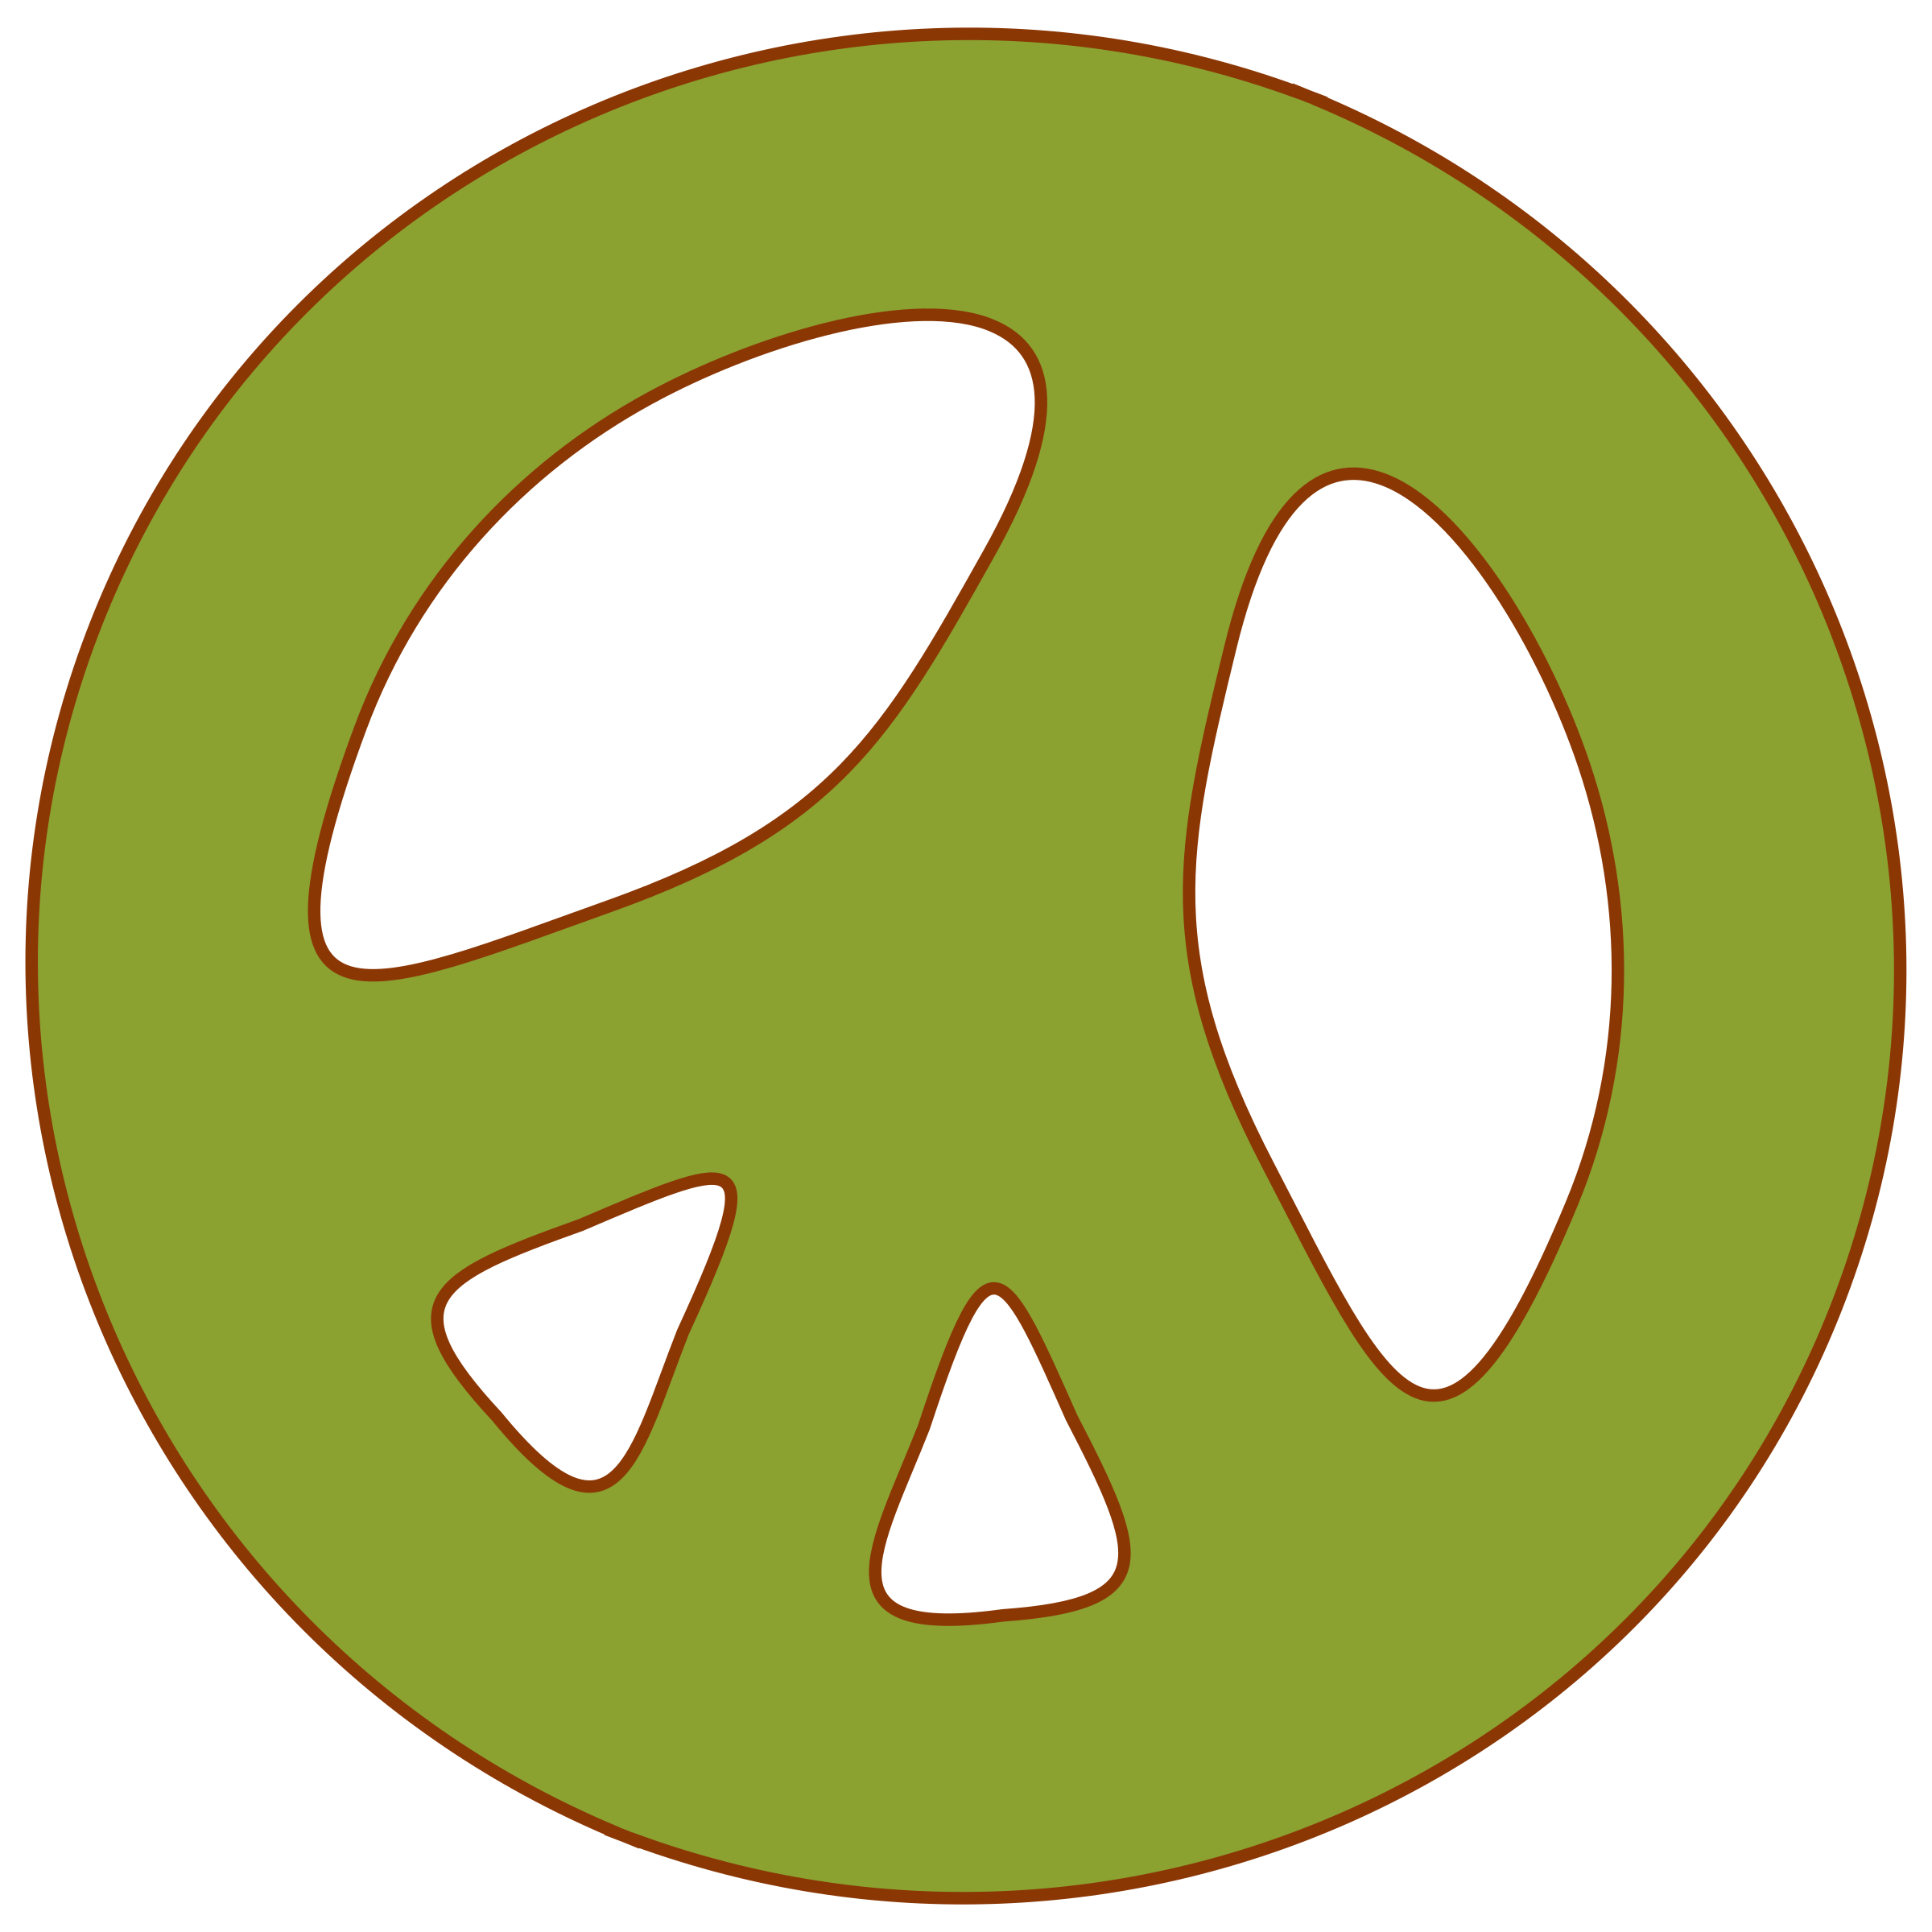 Peace sign clipart clipartmonk free clip art images